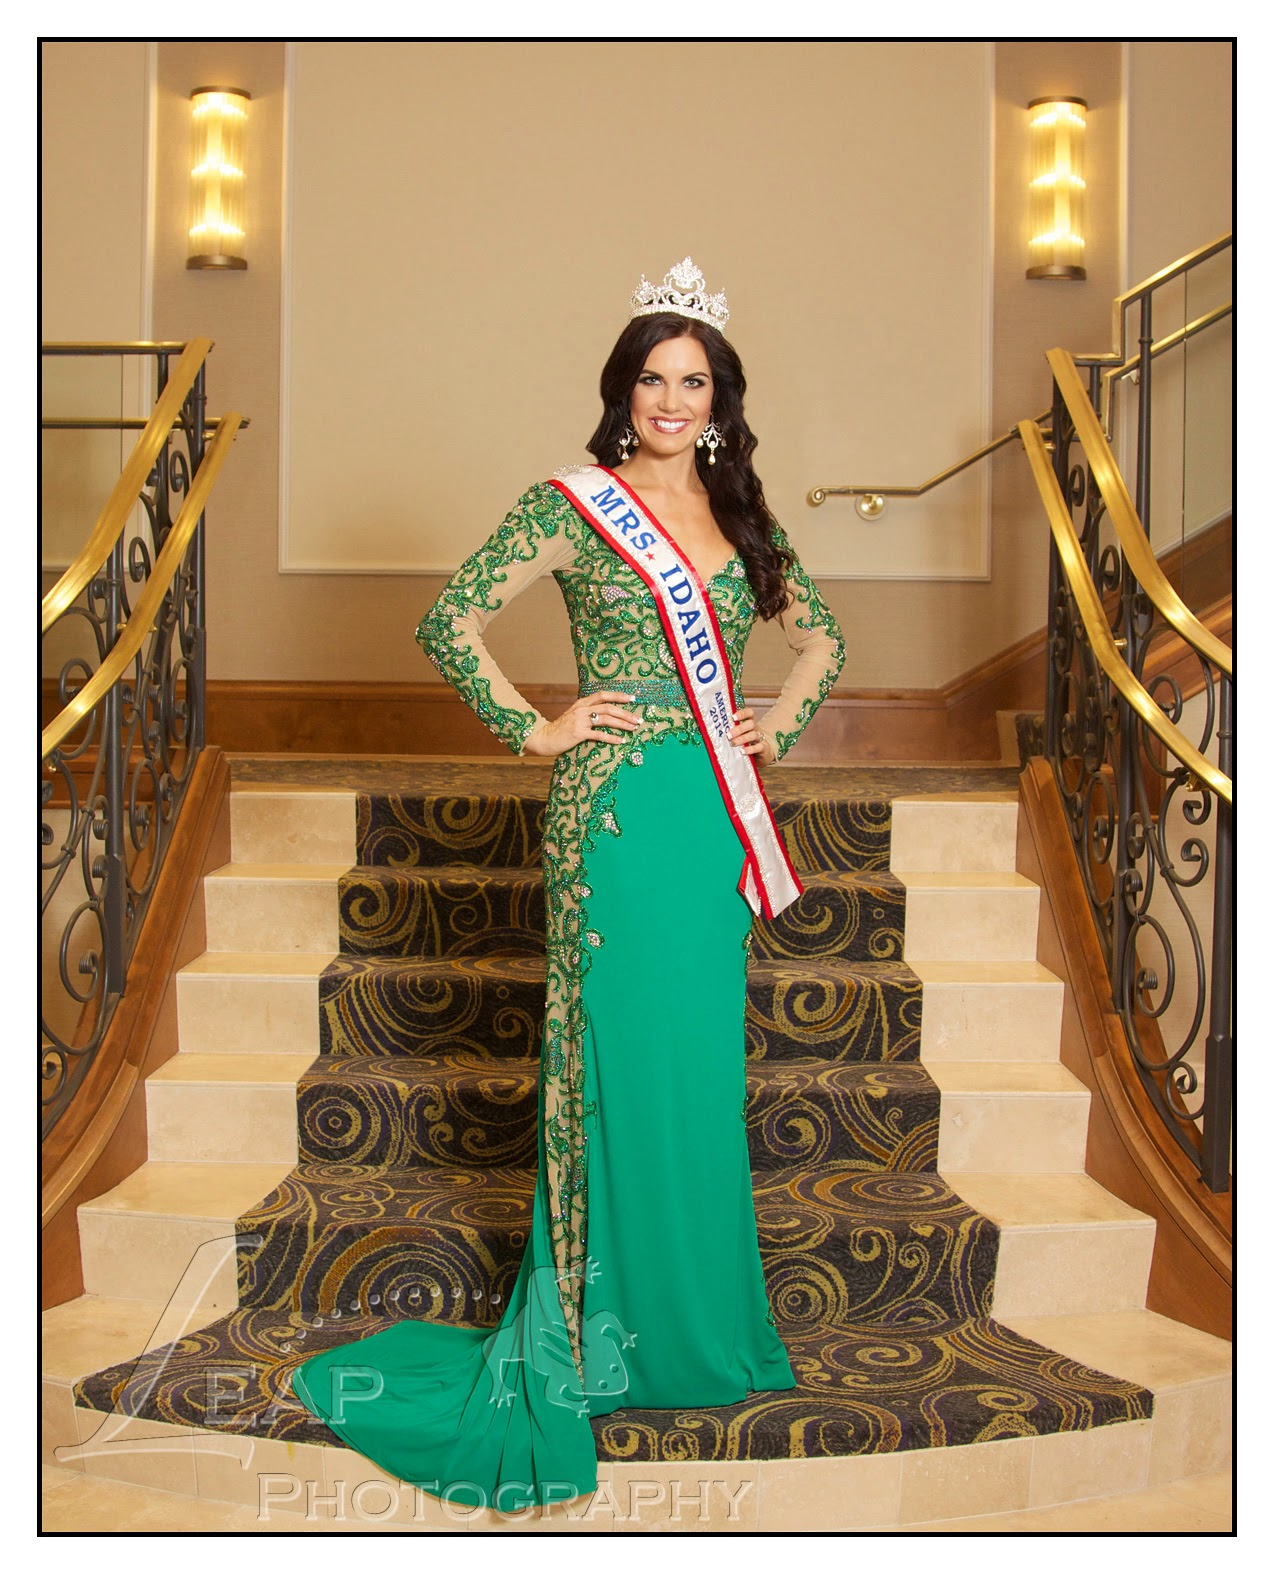 Mrs. Idaho 2014 in formal gown